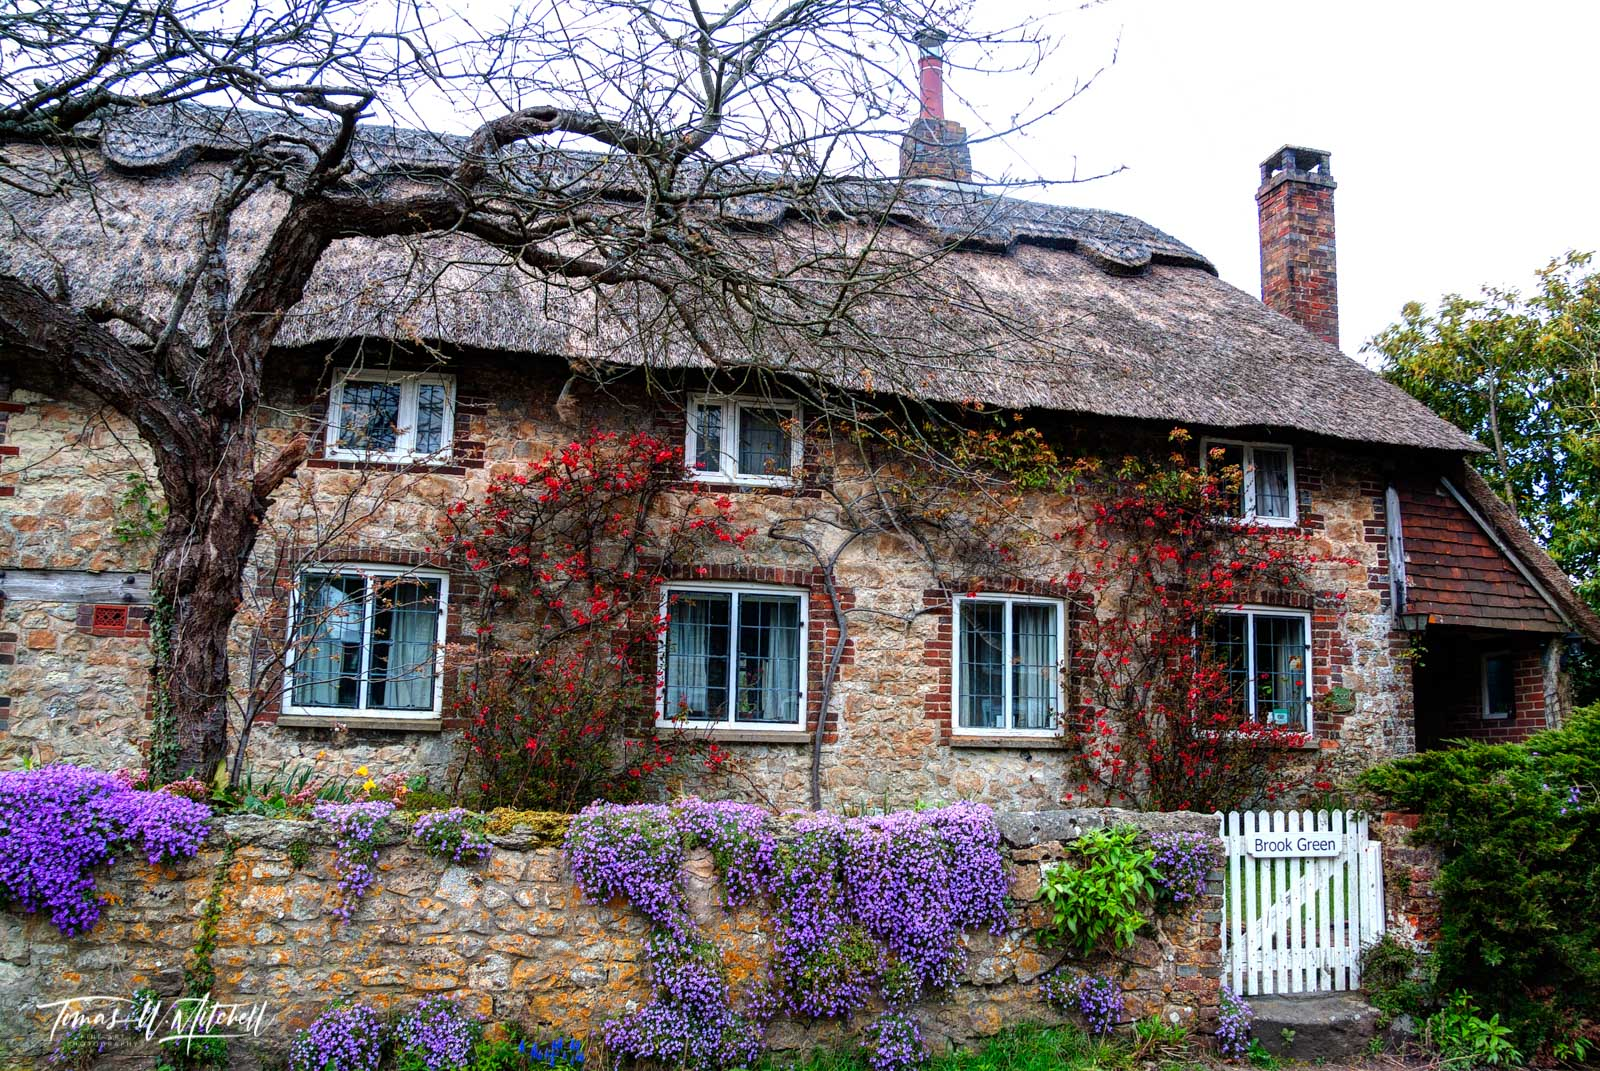 limited edition, museum grade, fine art prints, amberely, england, west sussex, village, famous, thatched roofs, spring, tourists, gate, stone wall, spring flowers, blooming, gloomy, color, photograph, photo